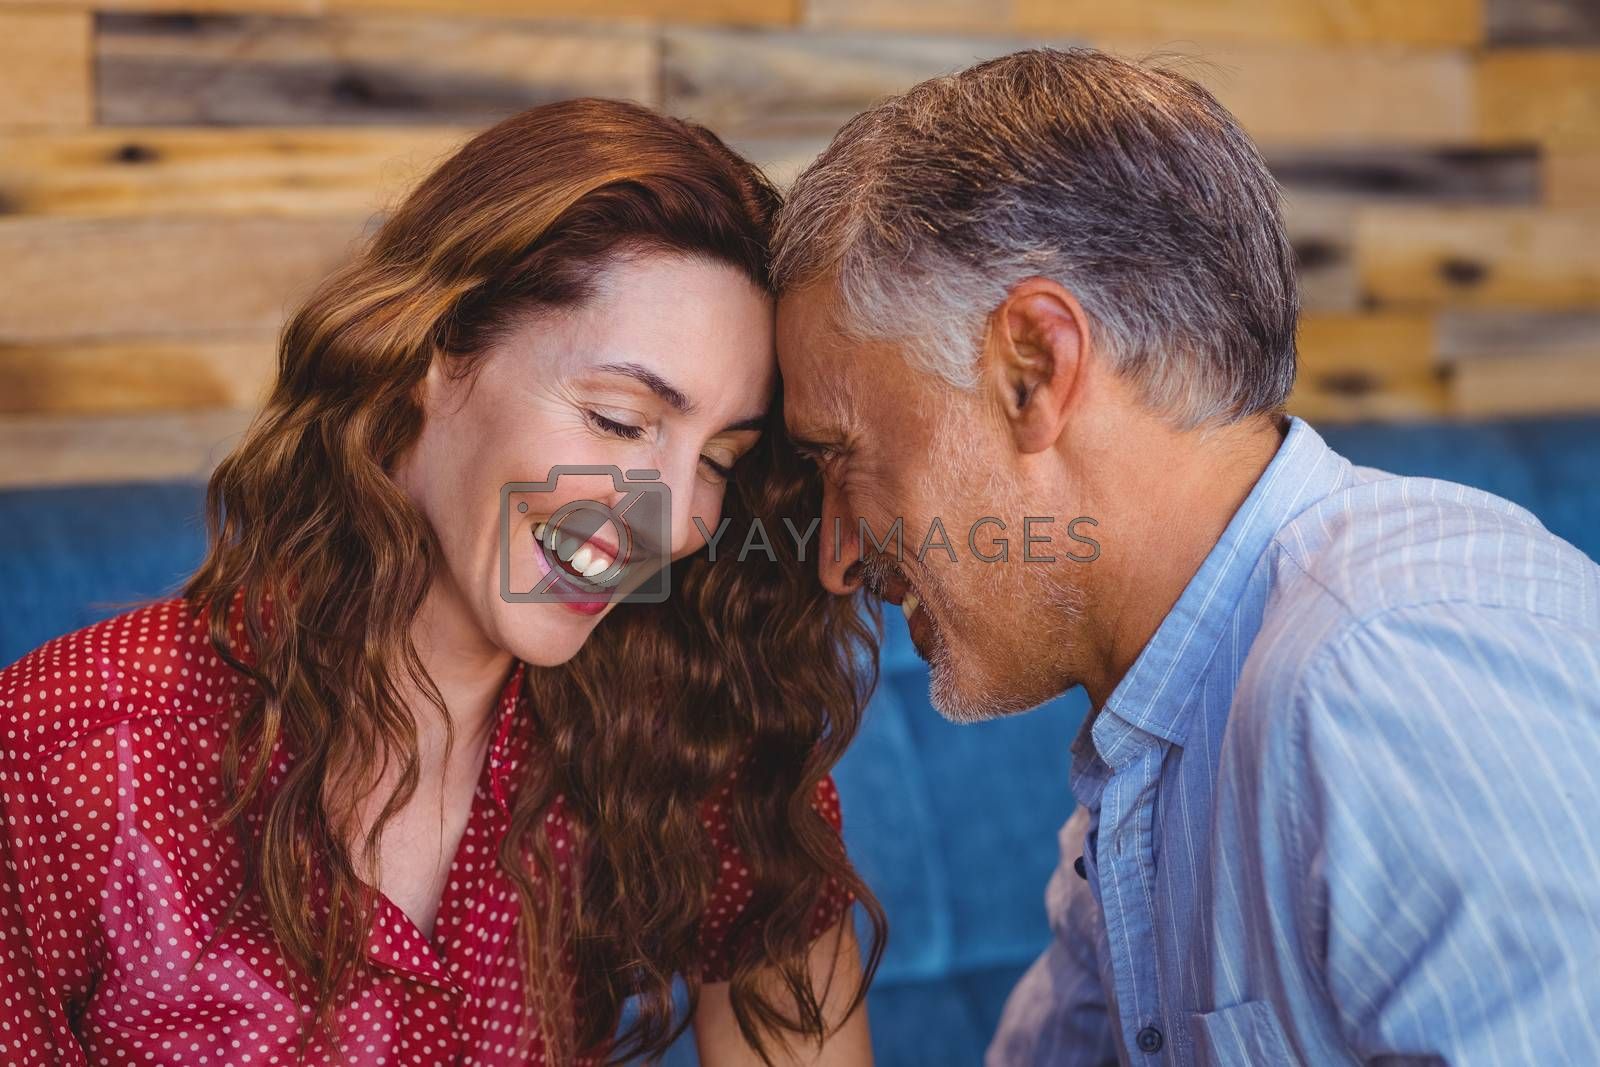 Royalty free image of Close up of a couple flirting by Wavebreakmedia